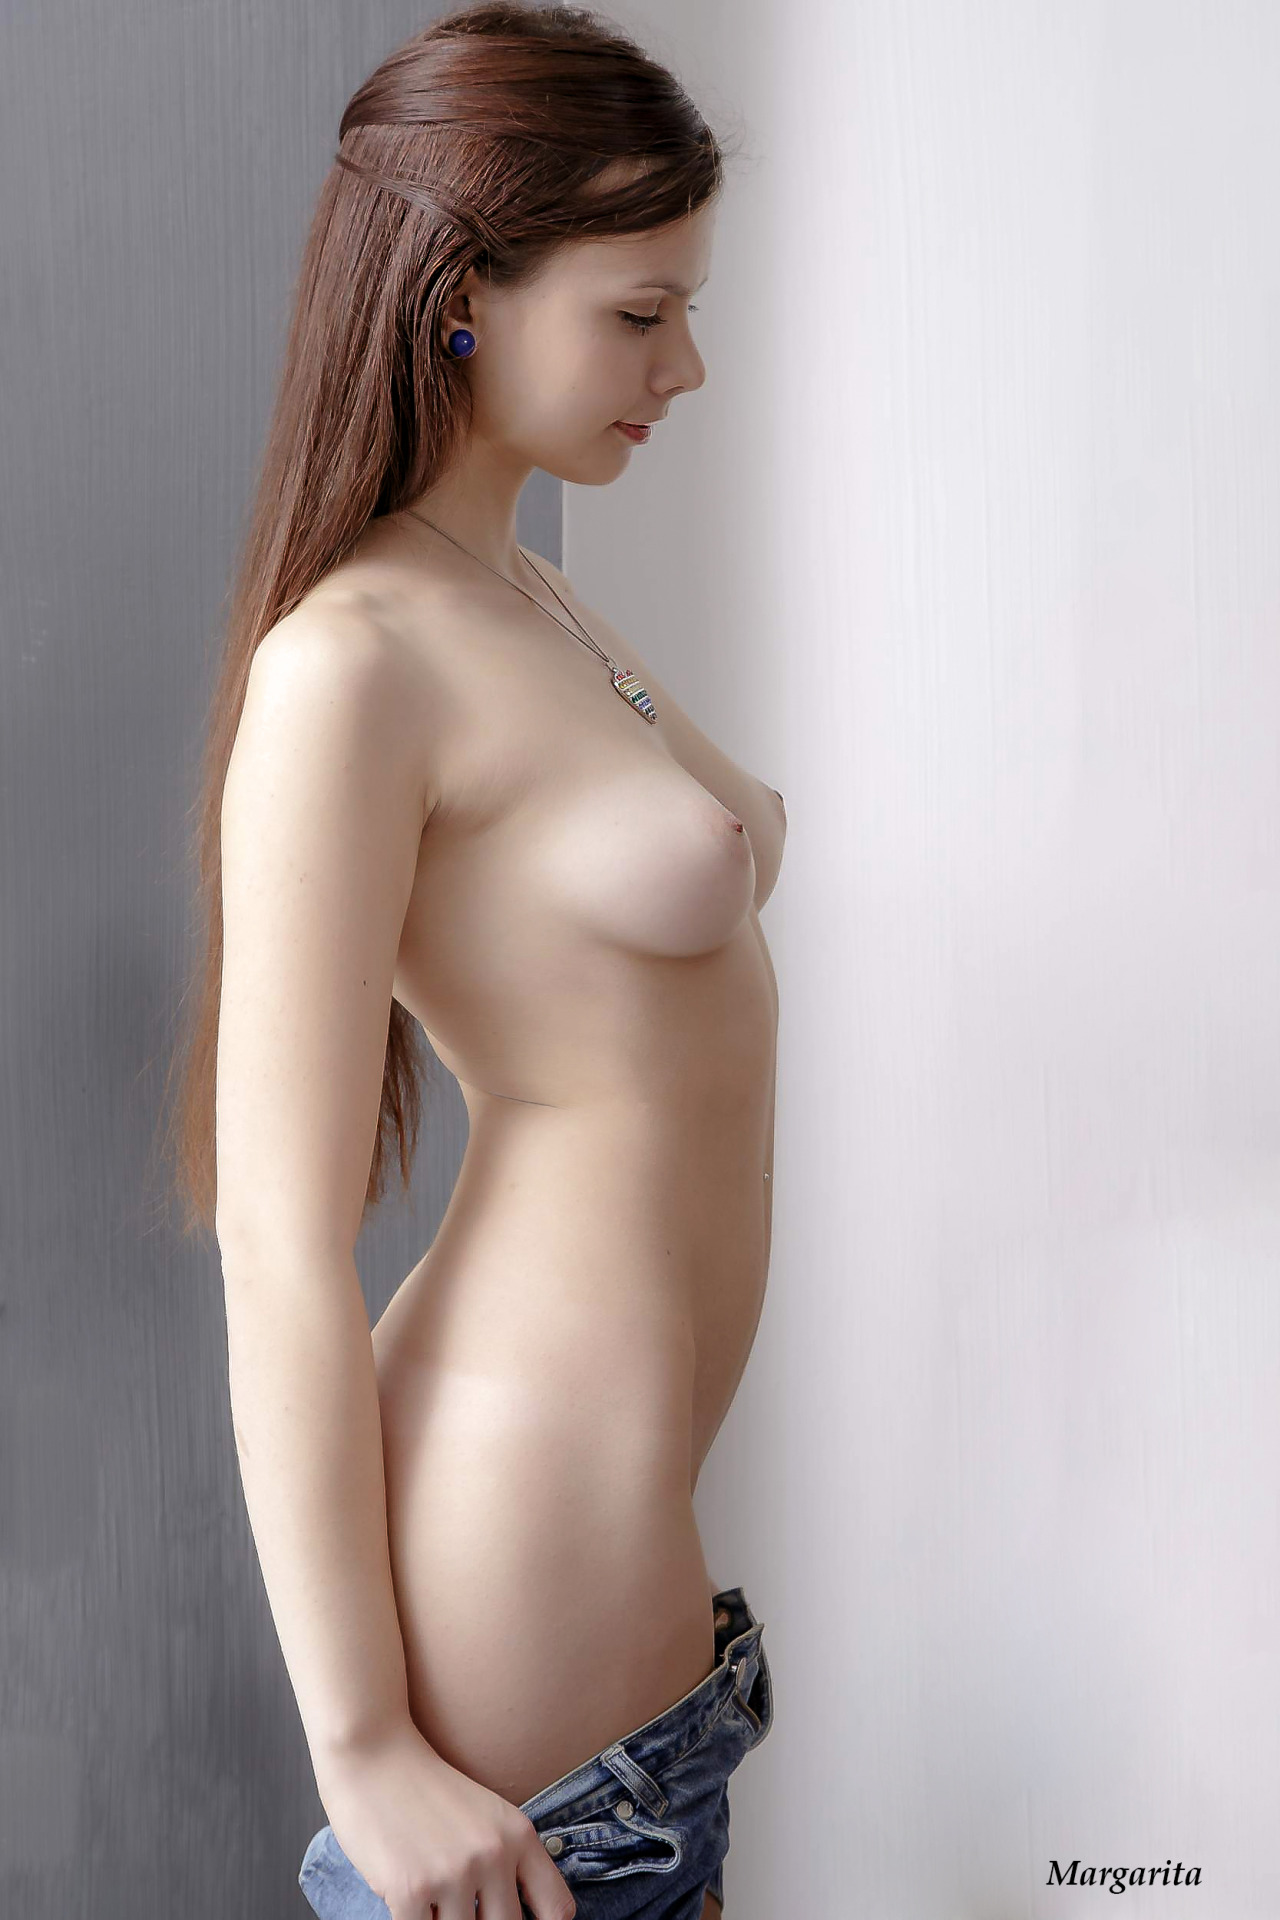 Girls with small breasts